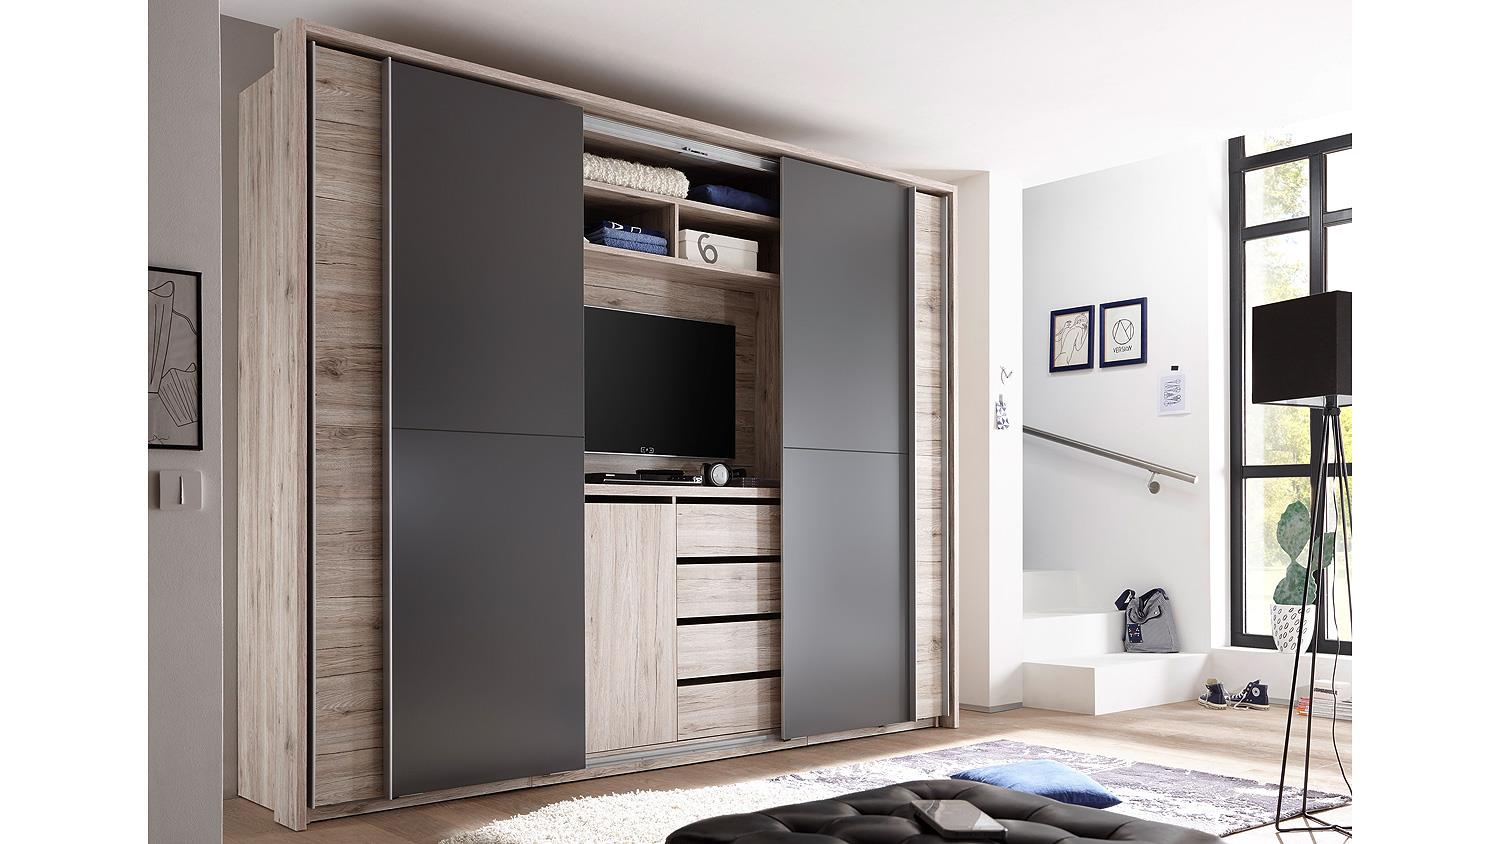 schwebet renschrank cinema schrank sandeiche lava tvfach tv schrank sandeiche. Black Bedroom Furniture Sets. Home Design Ideas